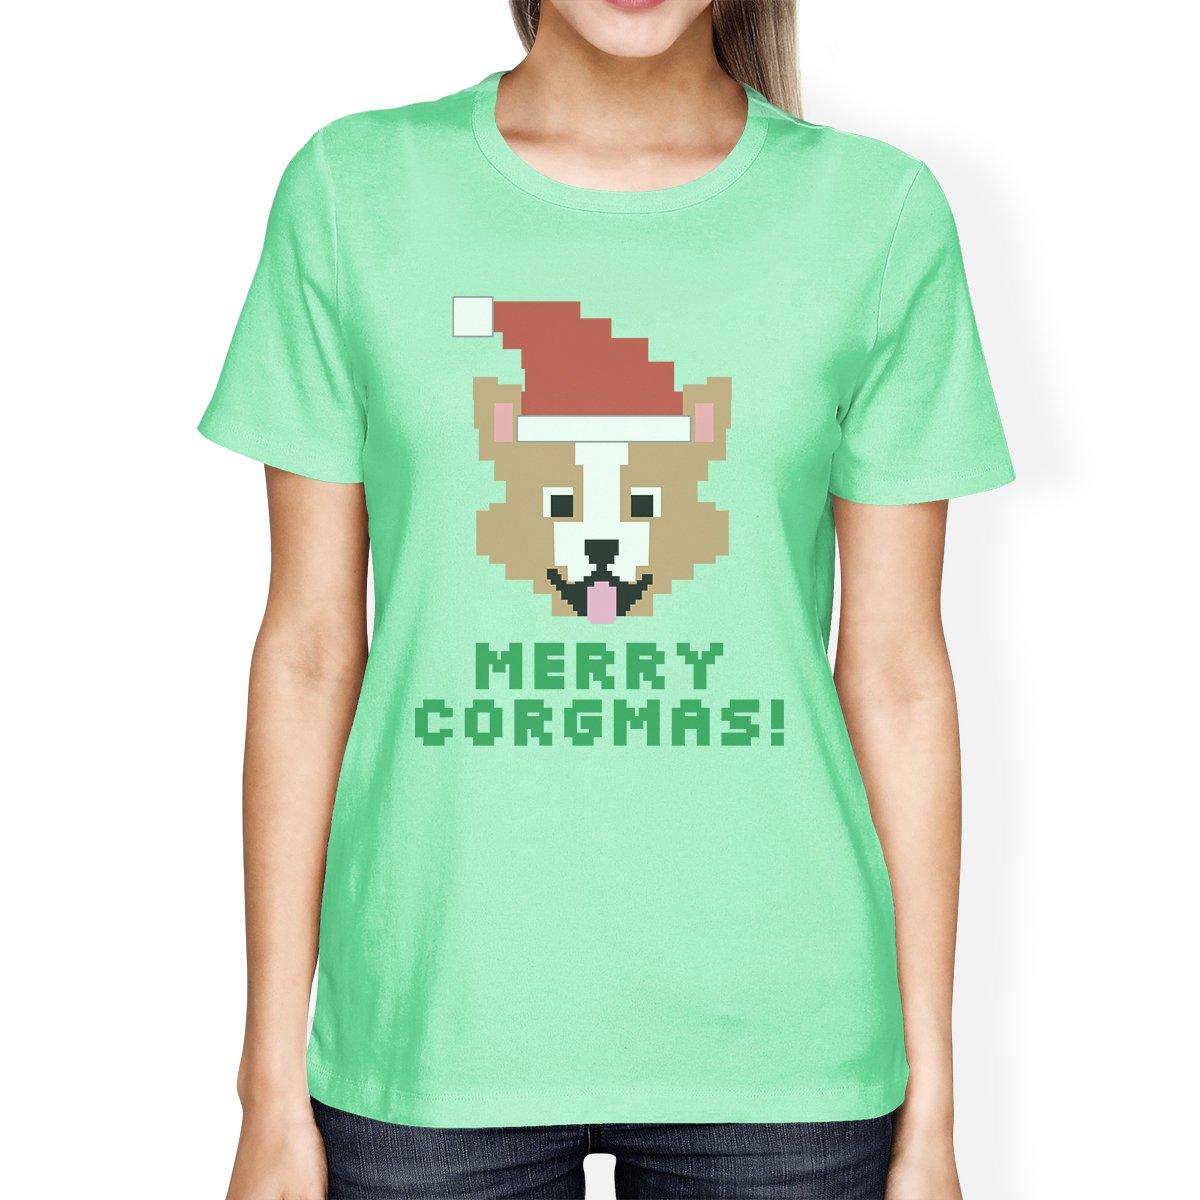 Merry Corgmas Corgi Womens Mint Shirt